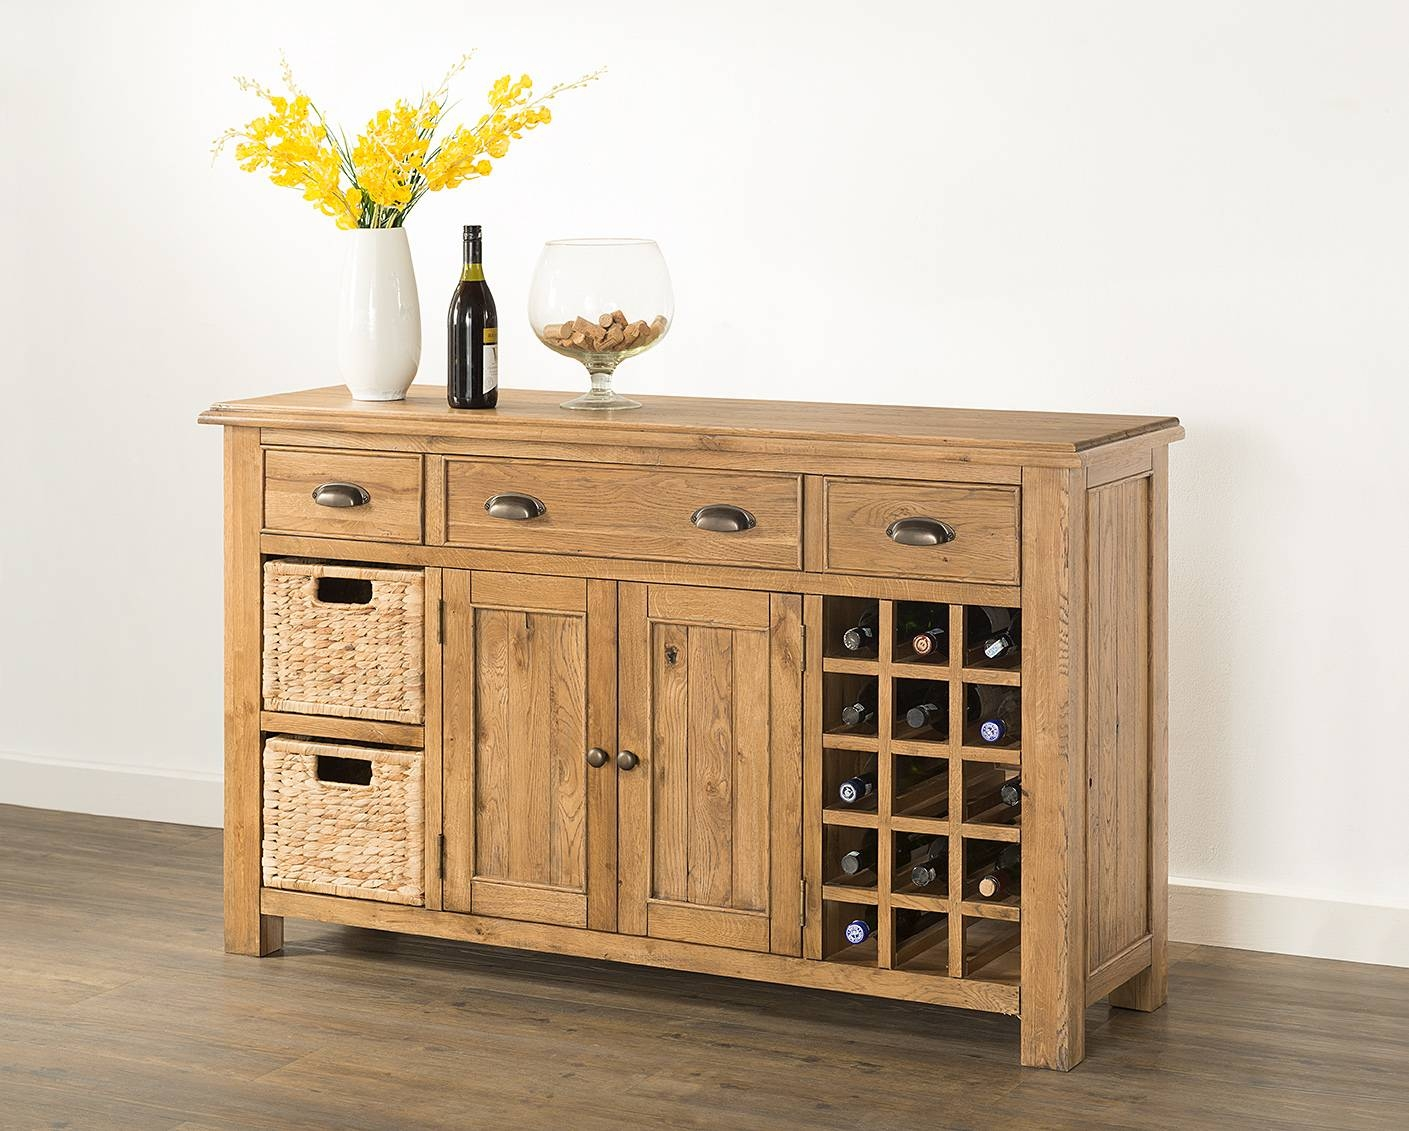 Hartford Large Sideboard With Wine Rack & Baskets (60 15) – Papaya In Recent Sideboards With Wine Rack (#5 of 15)